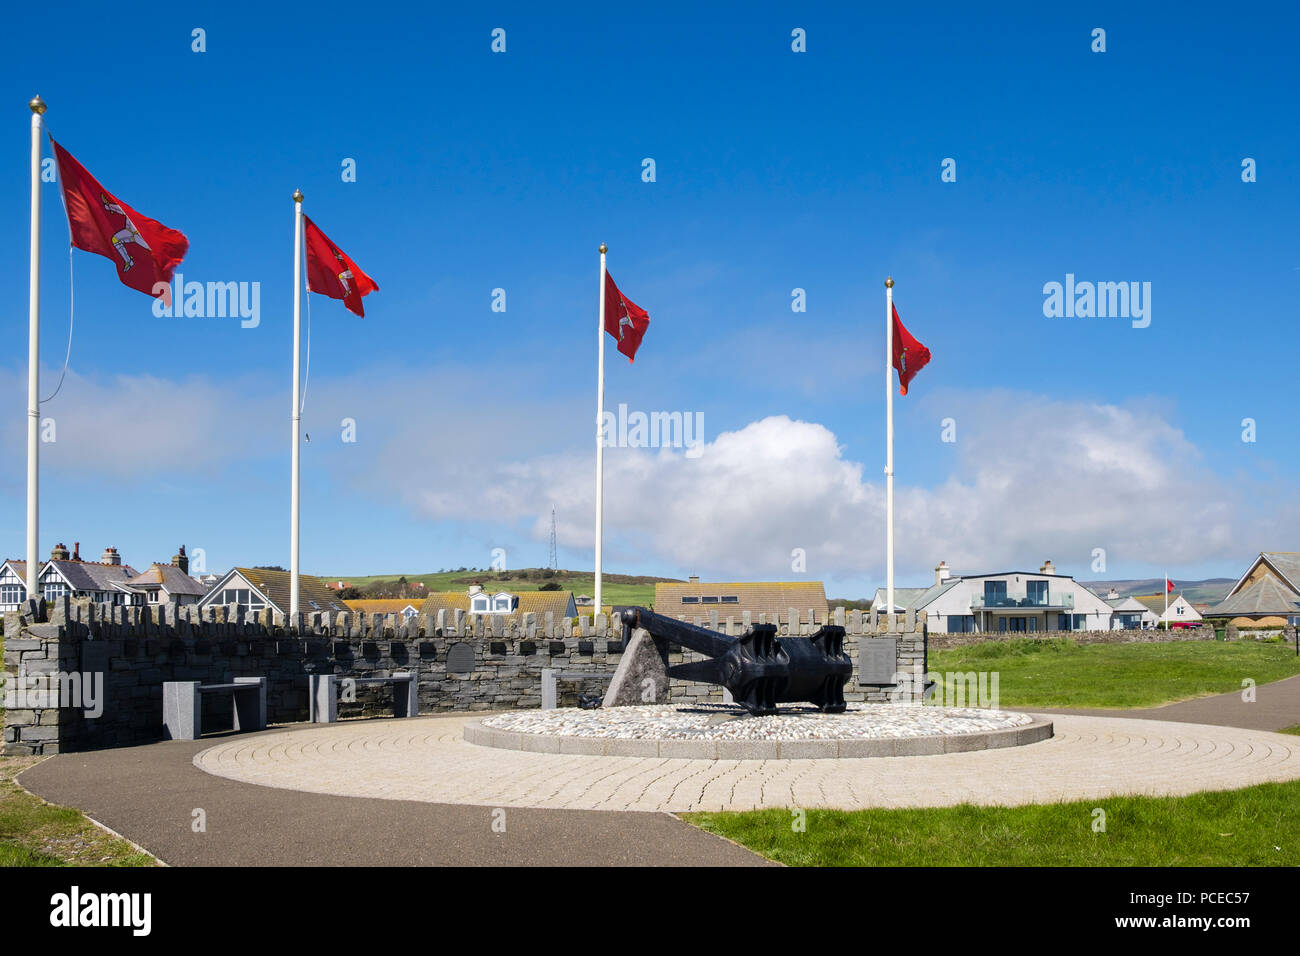 Manx flags flying at Dunkirk Memorial with anchor from Mona's Queen III sunk during Operation Dynamo. Kallow Point, Port St Mary, Isle of Man - Stock Image